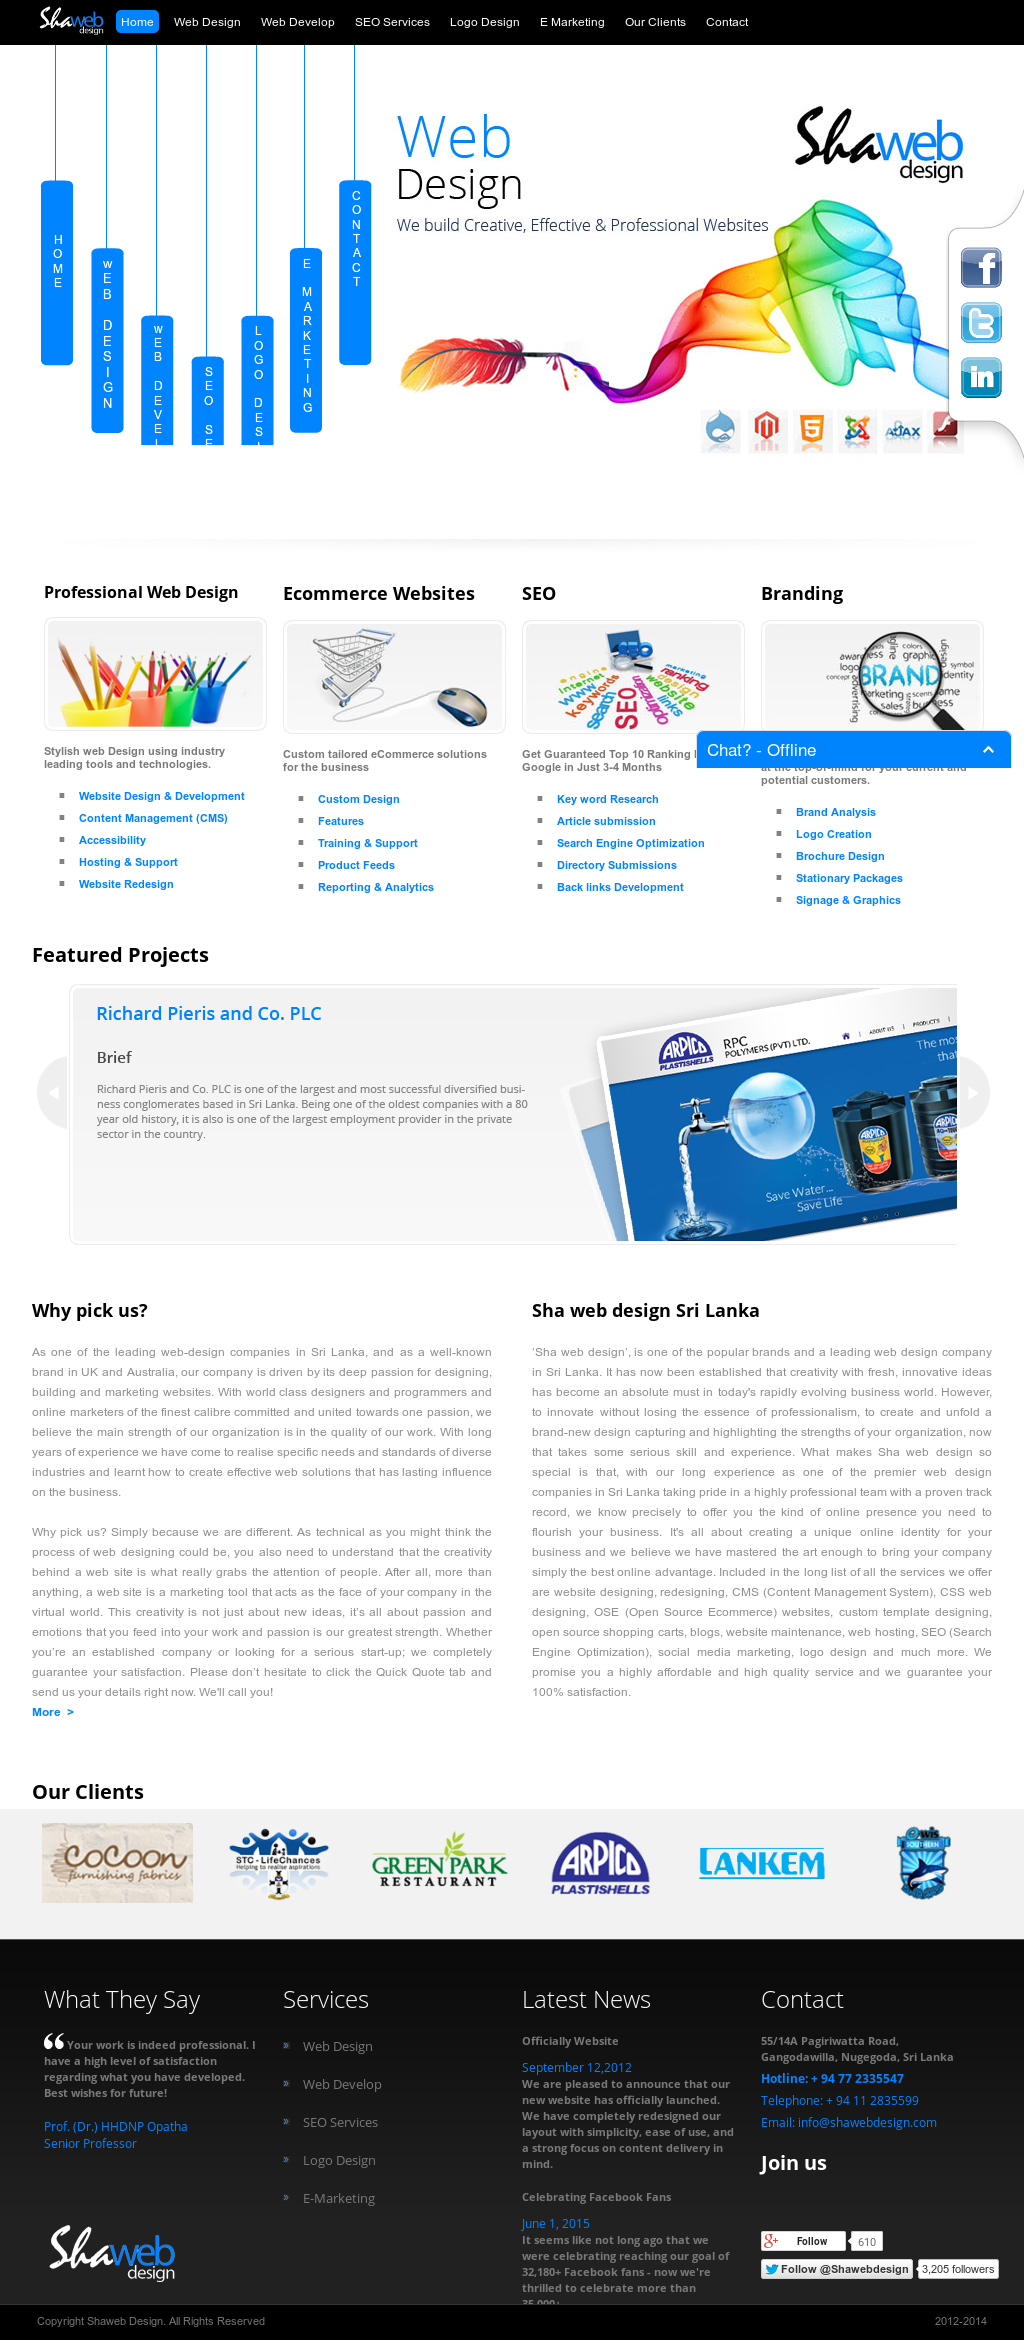 Sha Web Design Competitors, Revenue and Employees - Owler